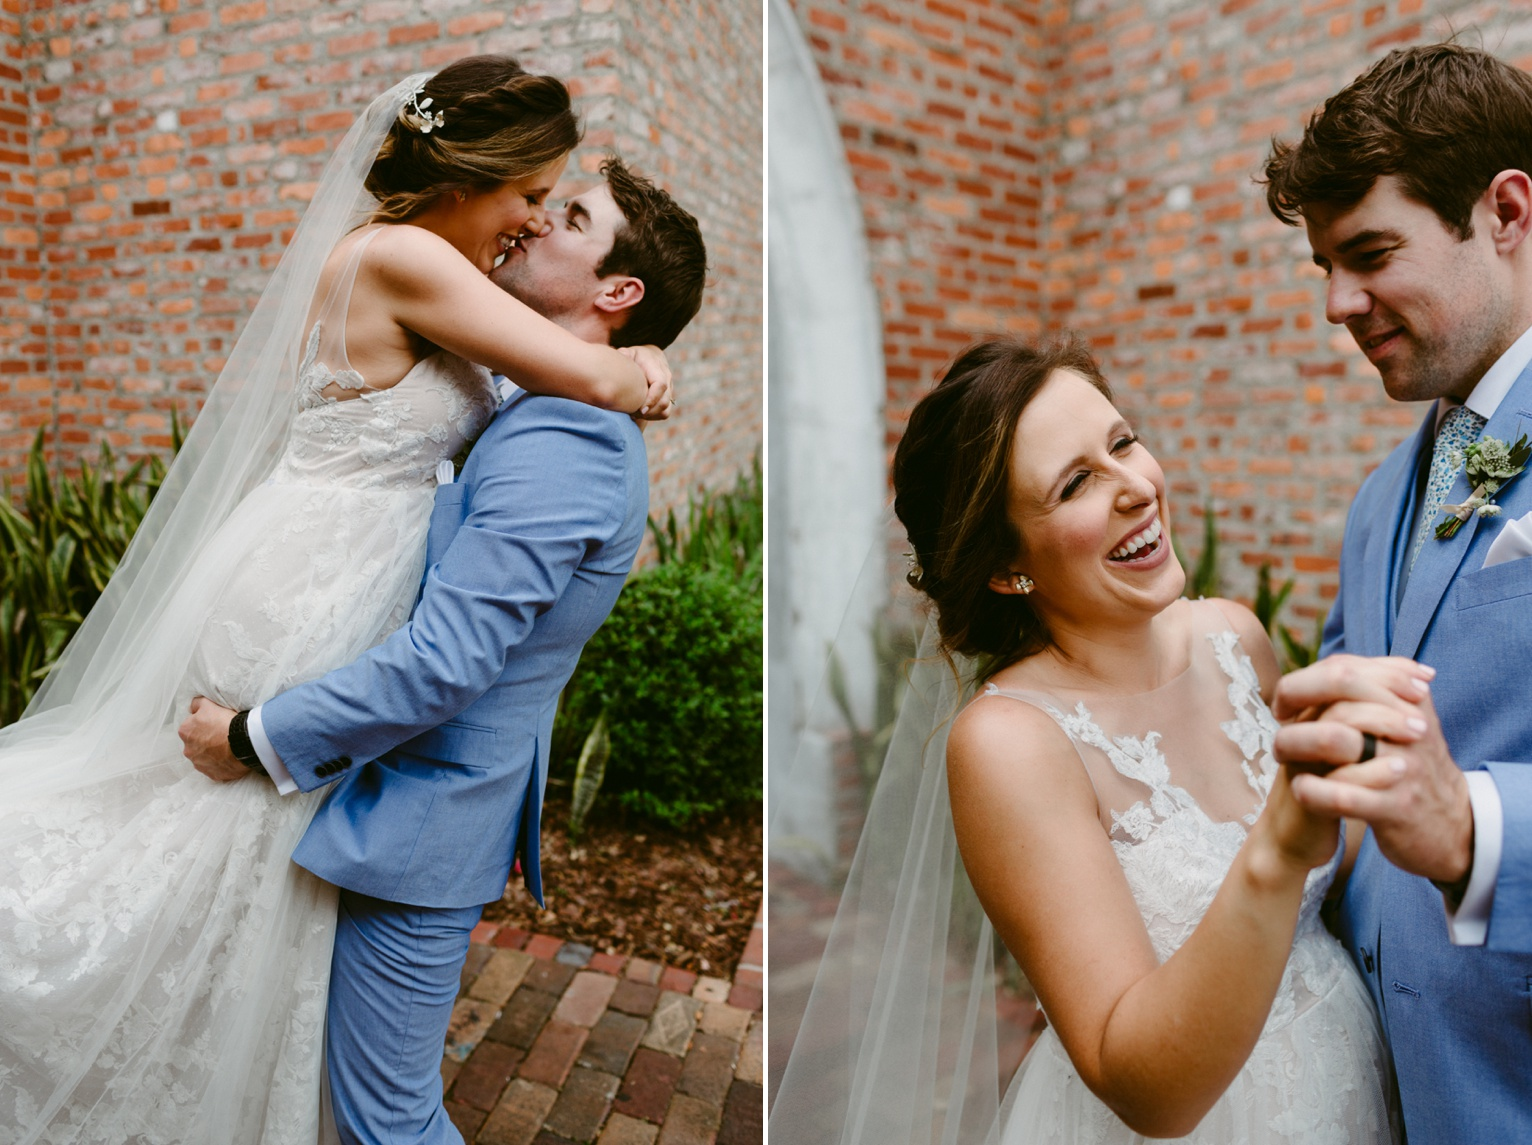 Dreamtownco.com_blog_Nick&Lindsay_Wedding_0110.jpg